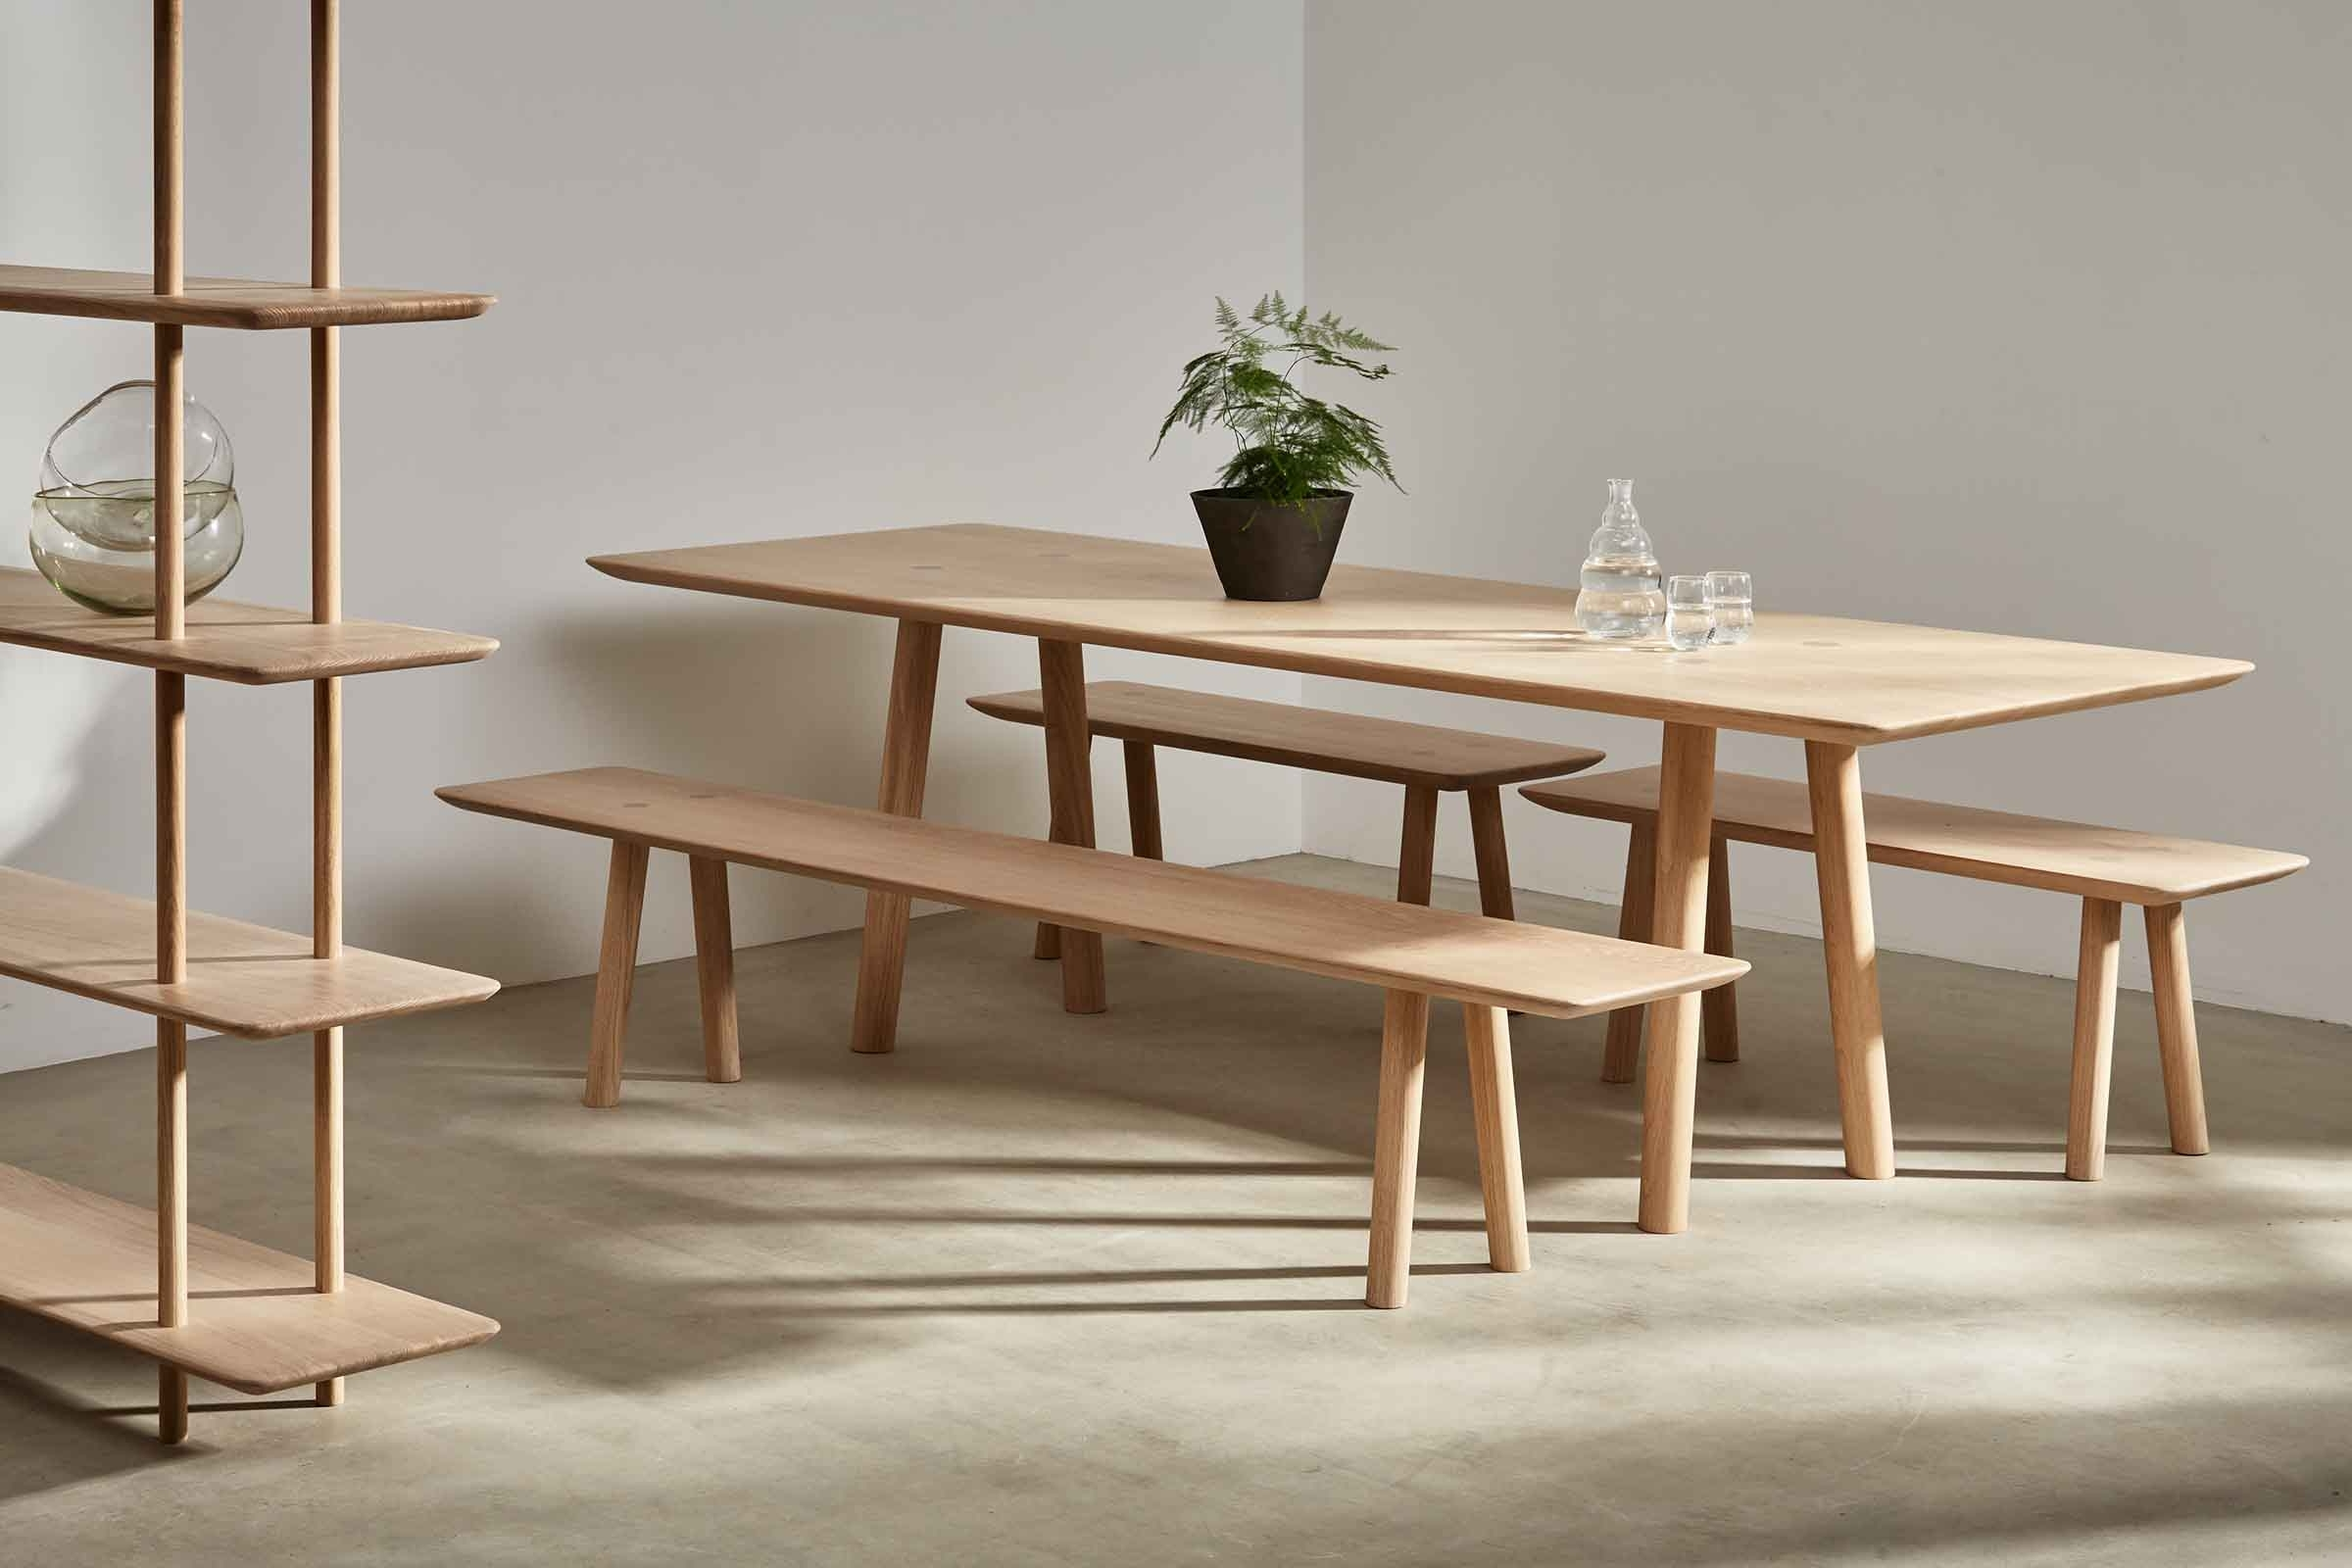 Most Recently Released Contemporary Furniture Handmade In Englandbenchmark Pertaining To Artisanal Dining Tables (View 21 of 25)